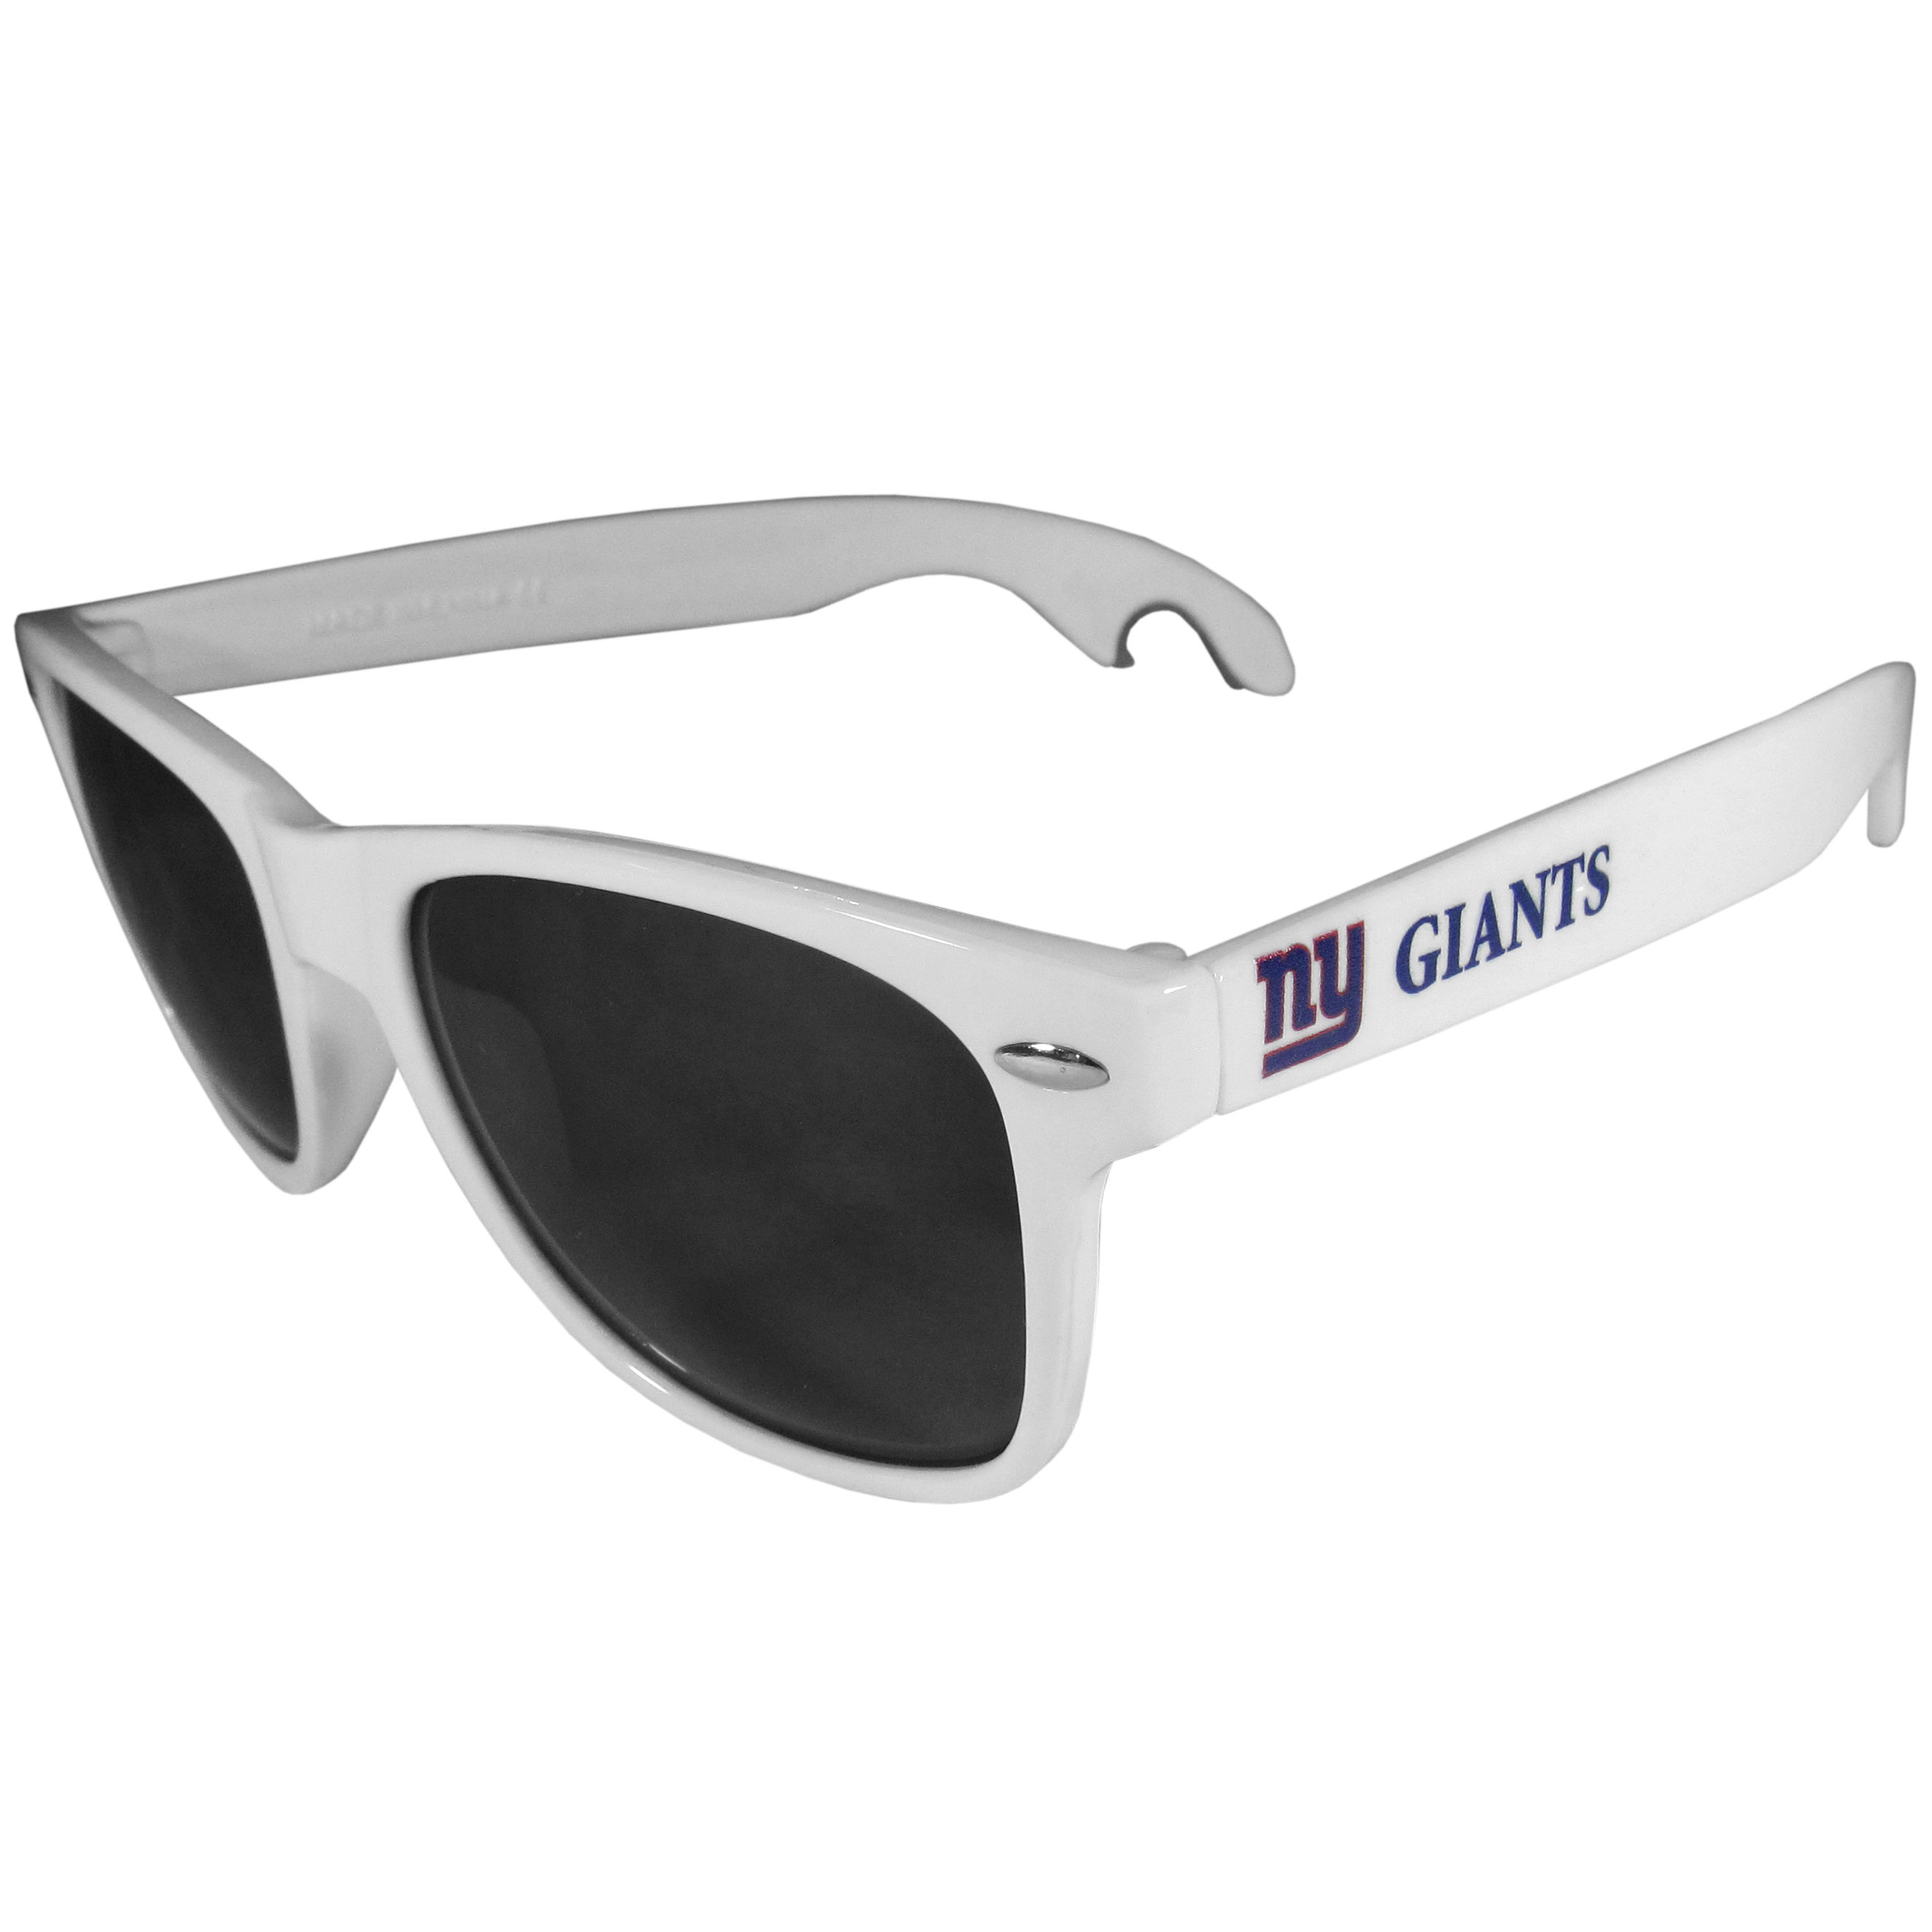 New York Giants Beachfarer Bottle Opener Sunglasses, White - Seriously, these sunglasses open bottles! Keep the party going with these amazing New York Giants bottle opener sunglasses. The stylish retro frames feature team designs on the arms and functional bottle openers on the end of the arms. Whether you are at the beach or having a backyard BBQ on game day, these shades will keep your eyes protected with 100% UVA/UVB protection and keep you hydrated with the handy bottle opener arms.